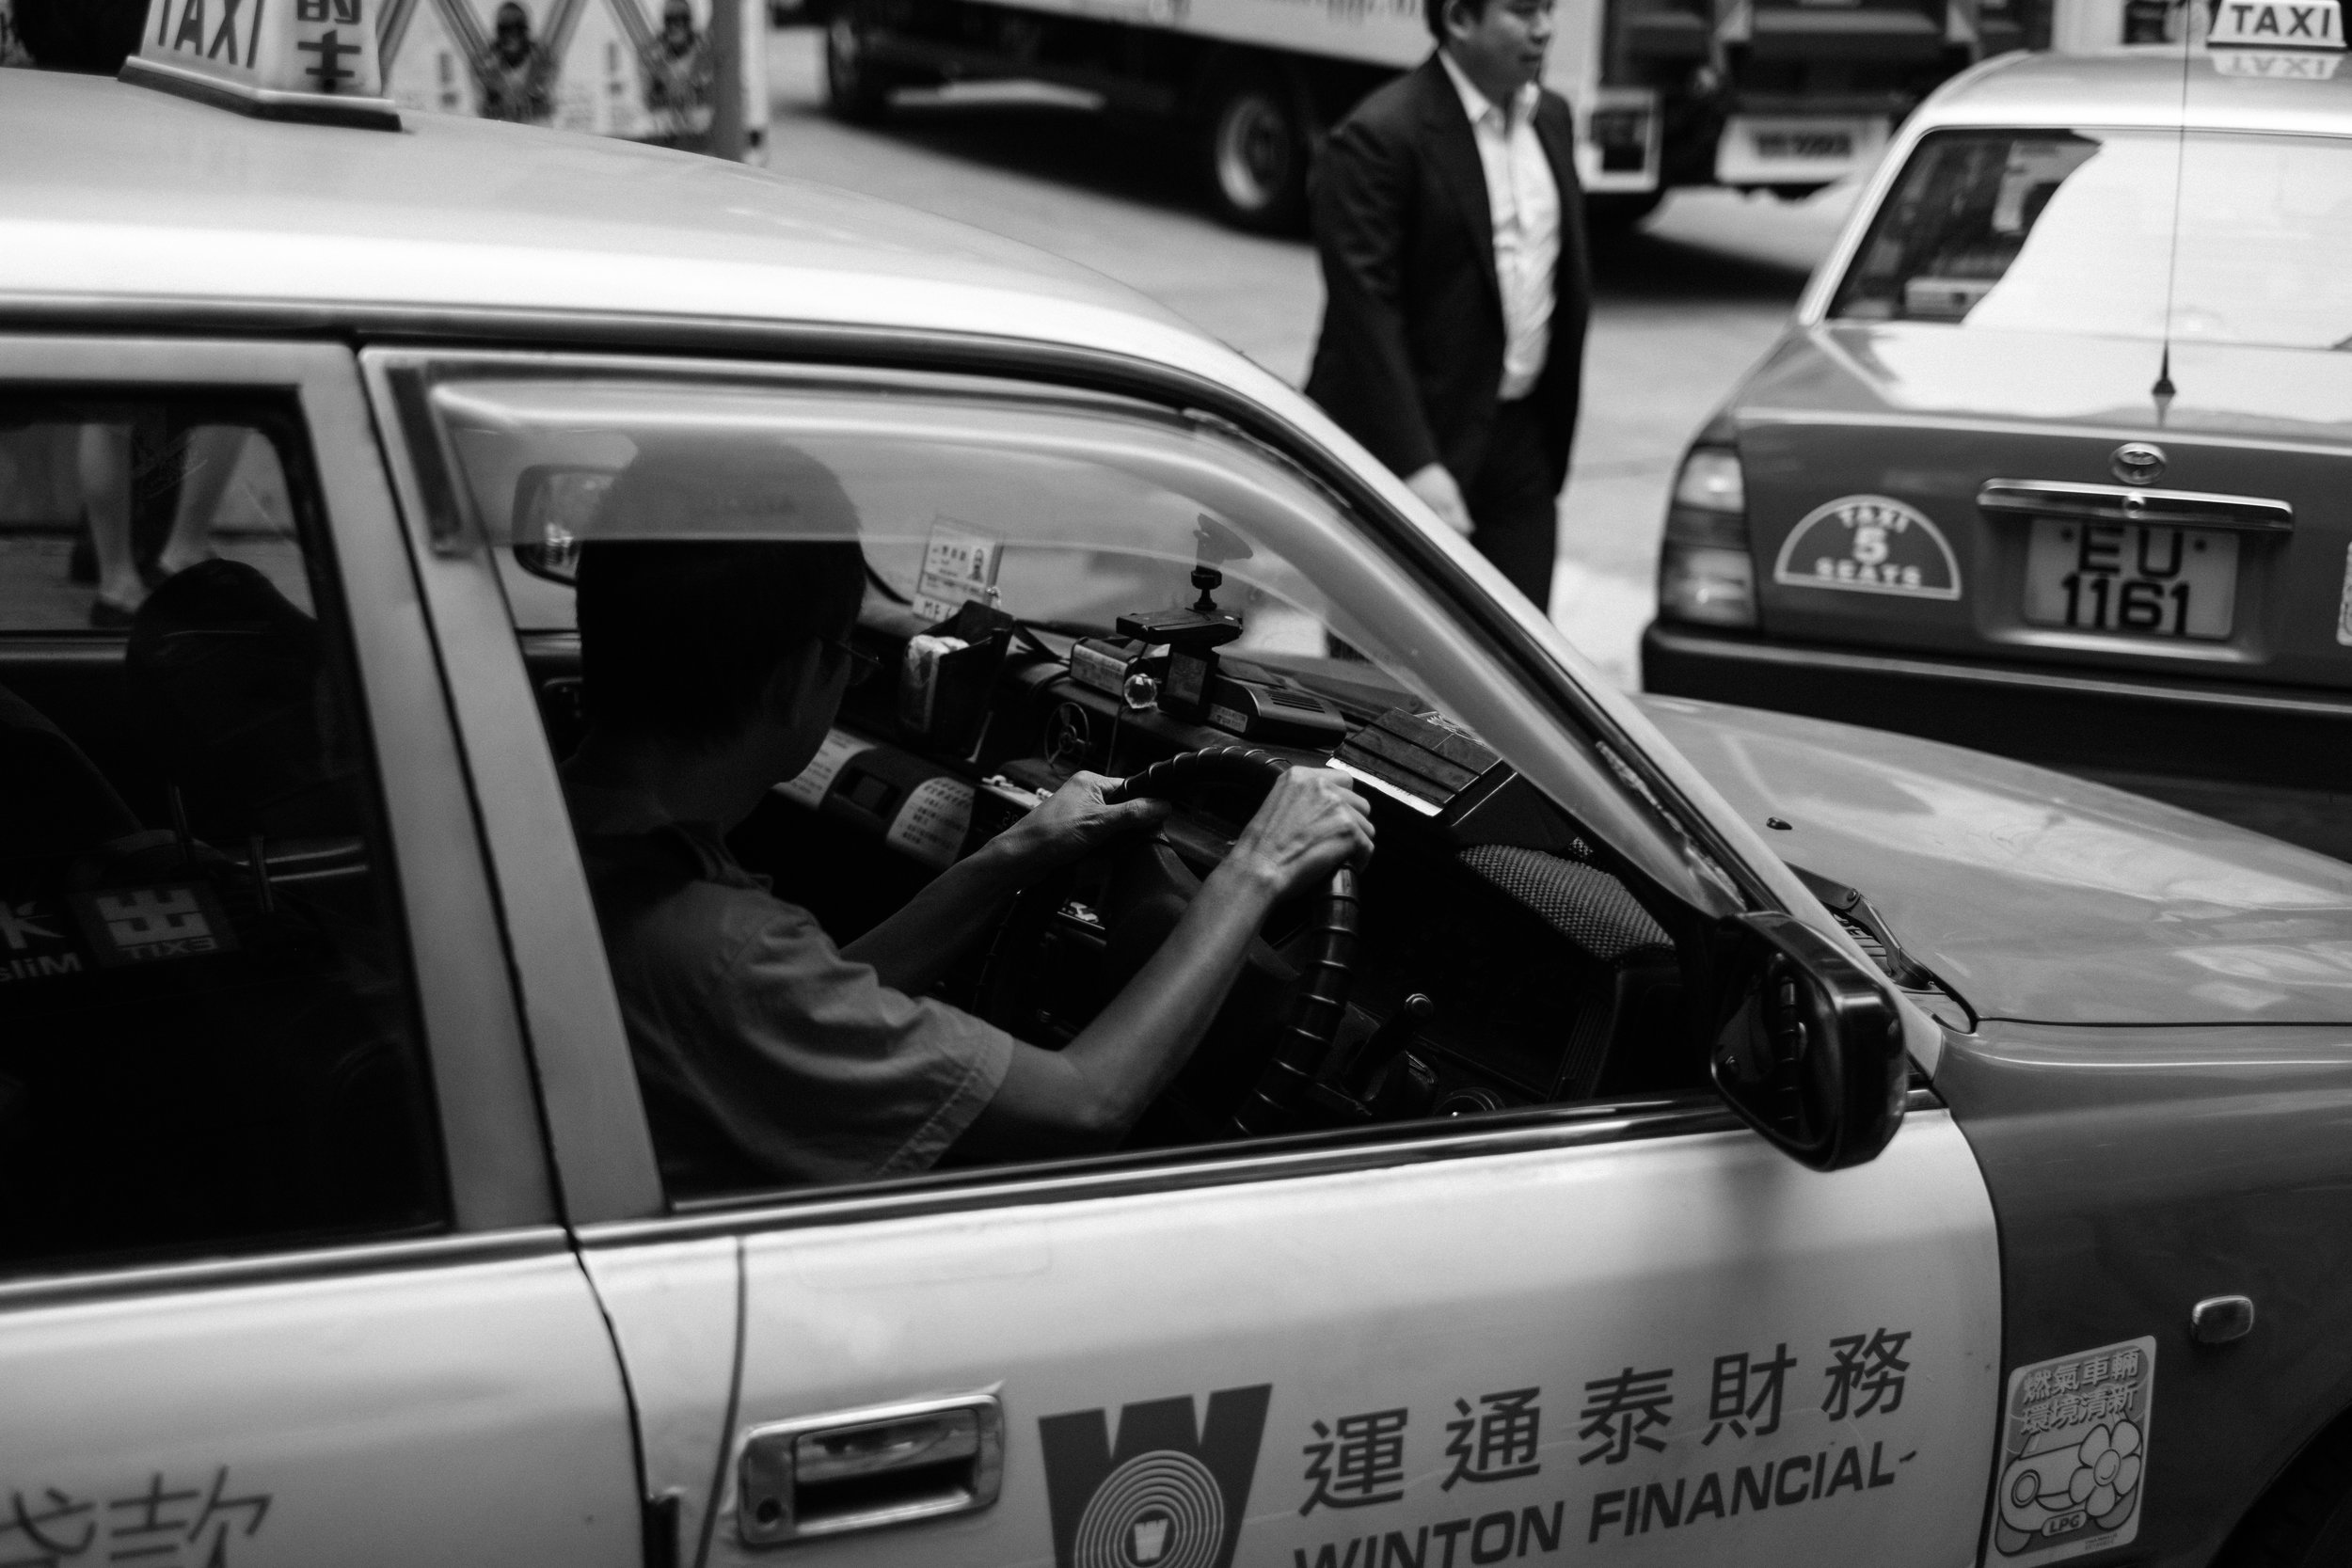 Two cabs navigate the busy Central District of Hong Kong Central